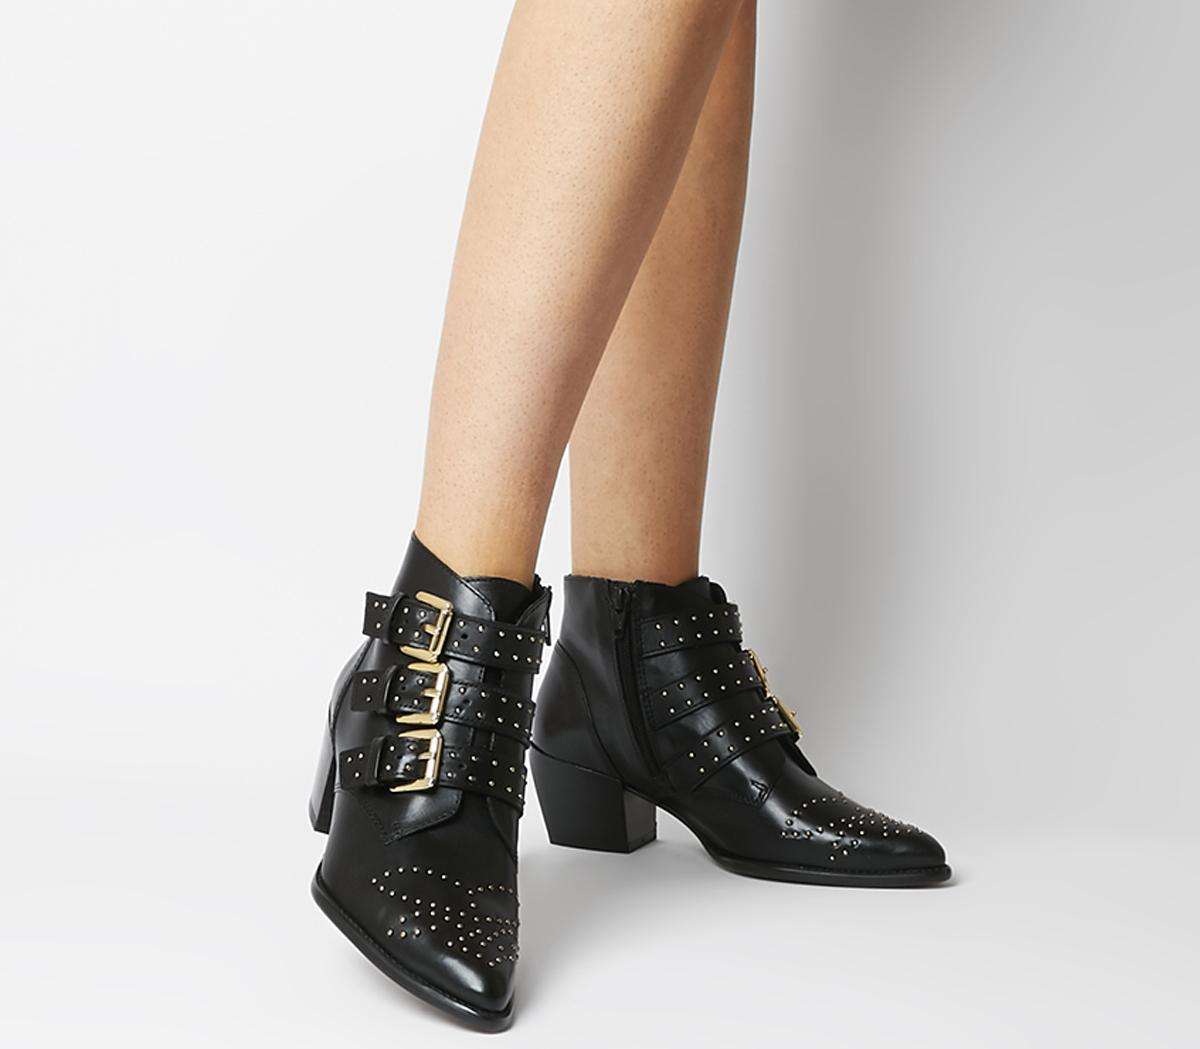 Astrology Western Boots With Buckles